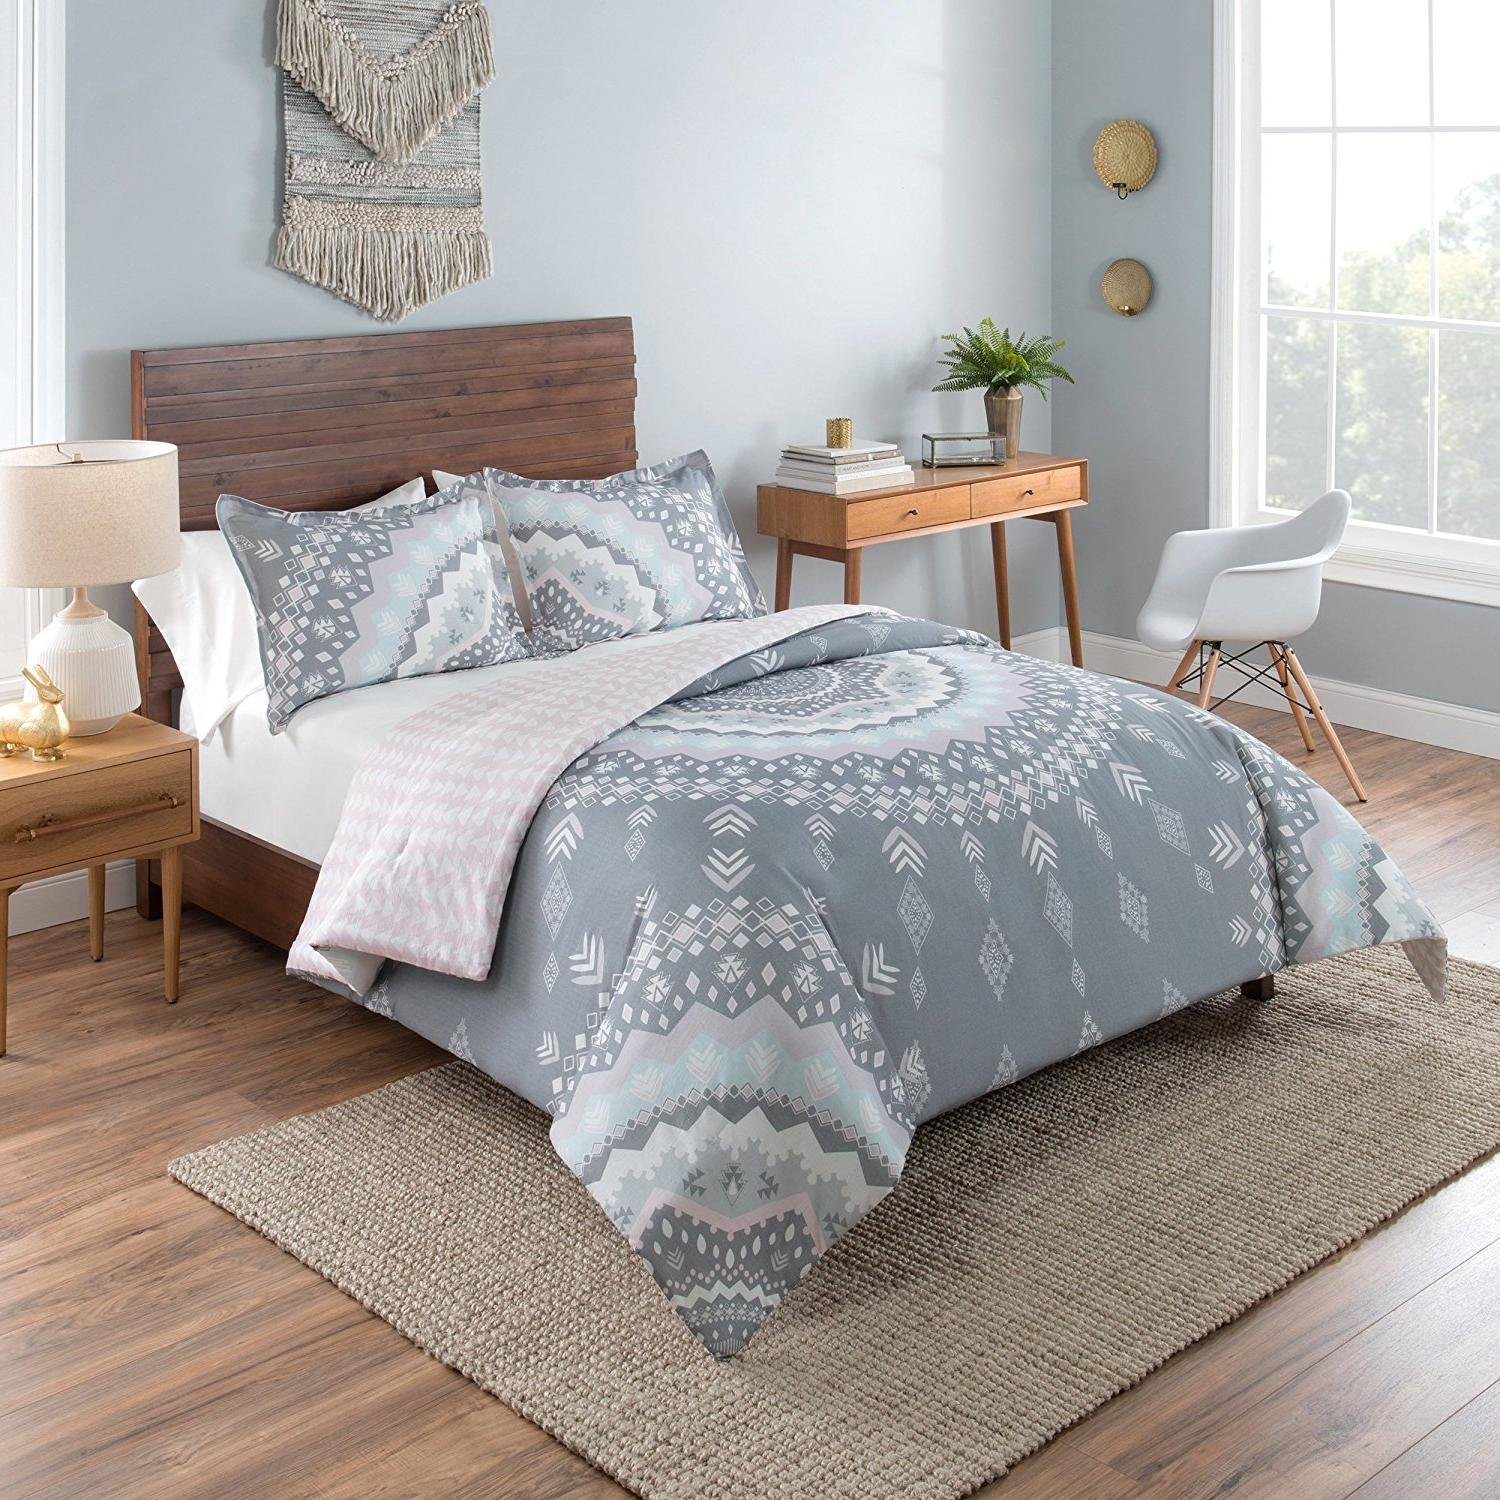 OSD 3pc Girls Light Pink White Grey Bohemian Mandala Comforter King Set, Gray, Girly Tribal Southwest Arrow Bedding, Boho Chic Tribe Southwestern Native American Themed Pattern